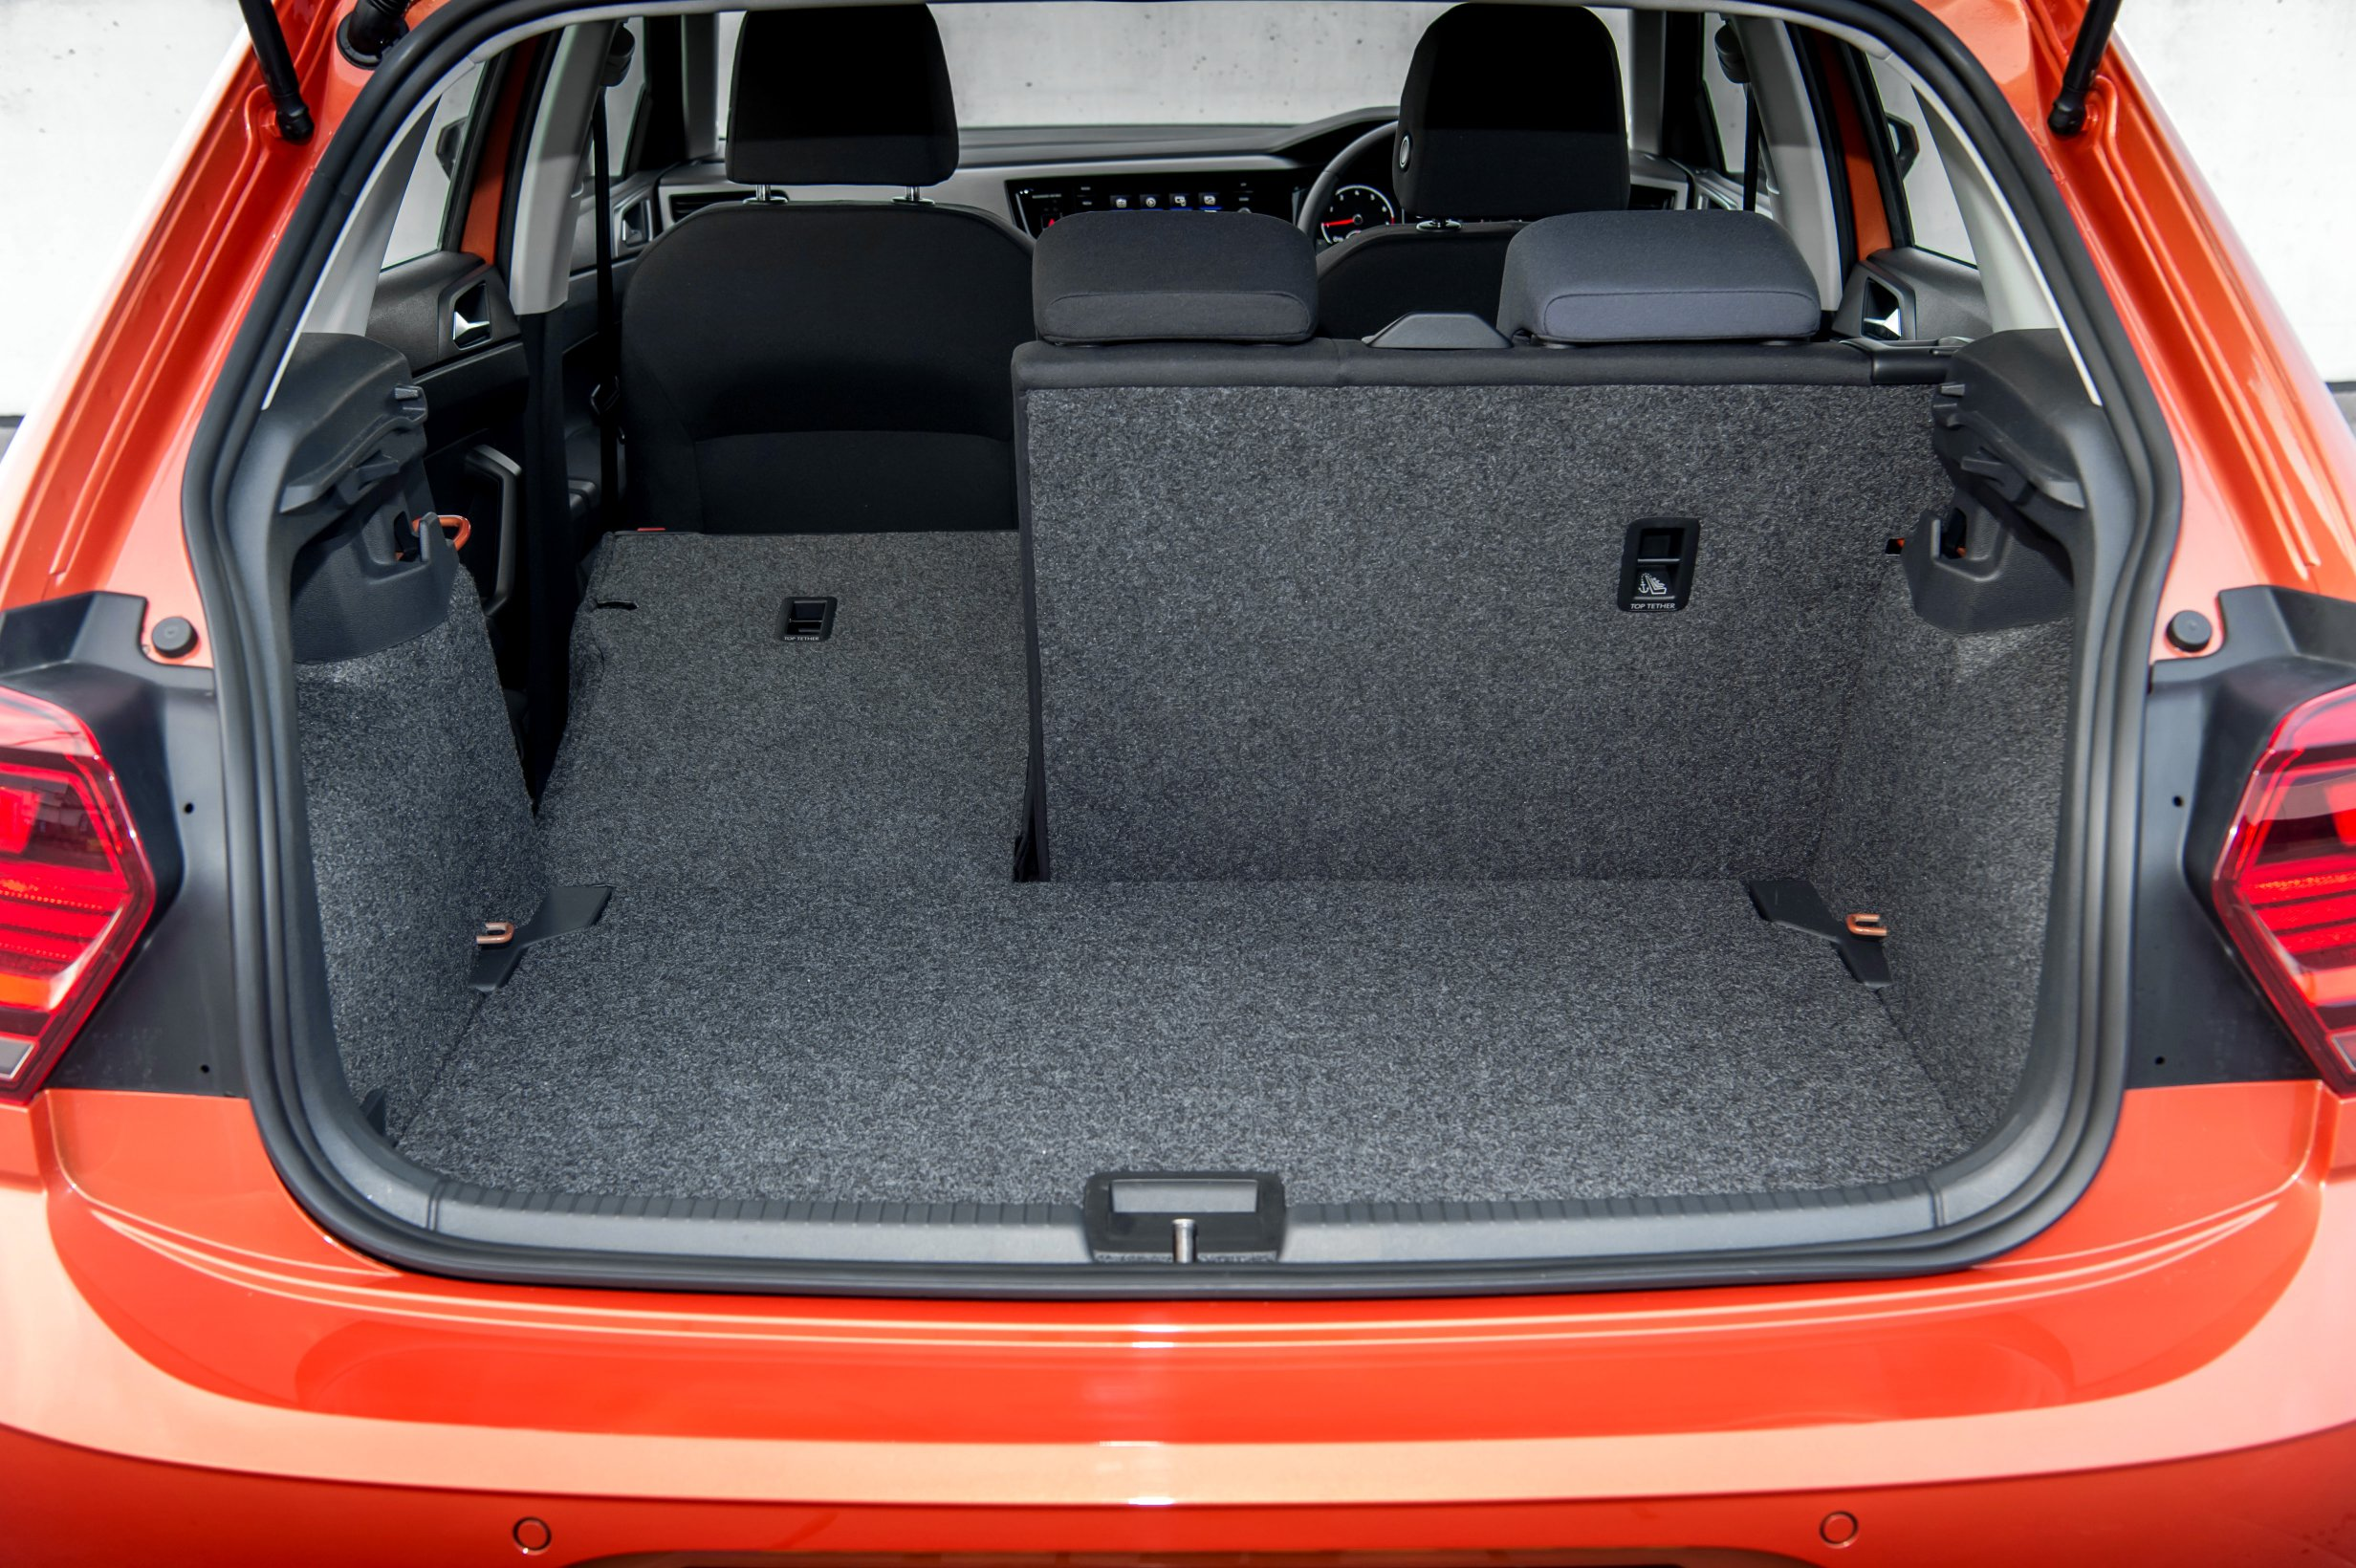 The capacious boot of the new Volkswagen Polo